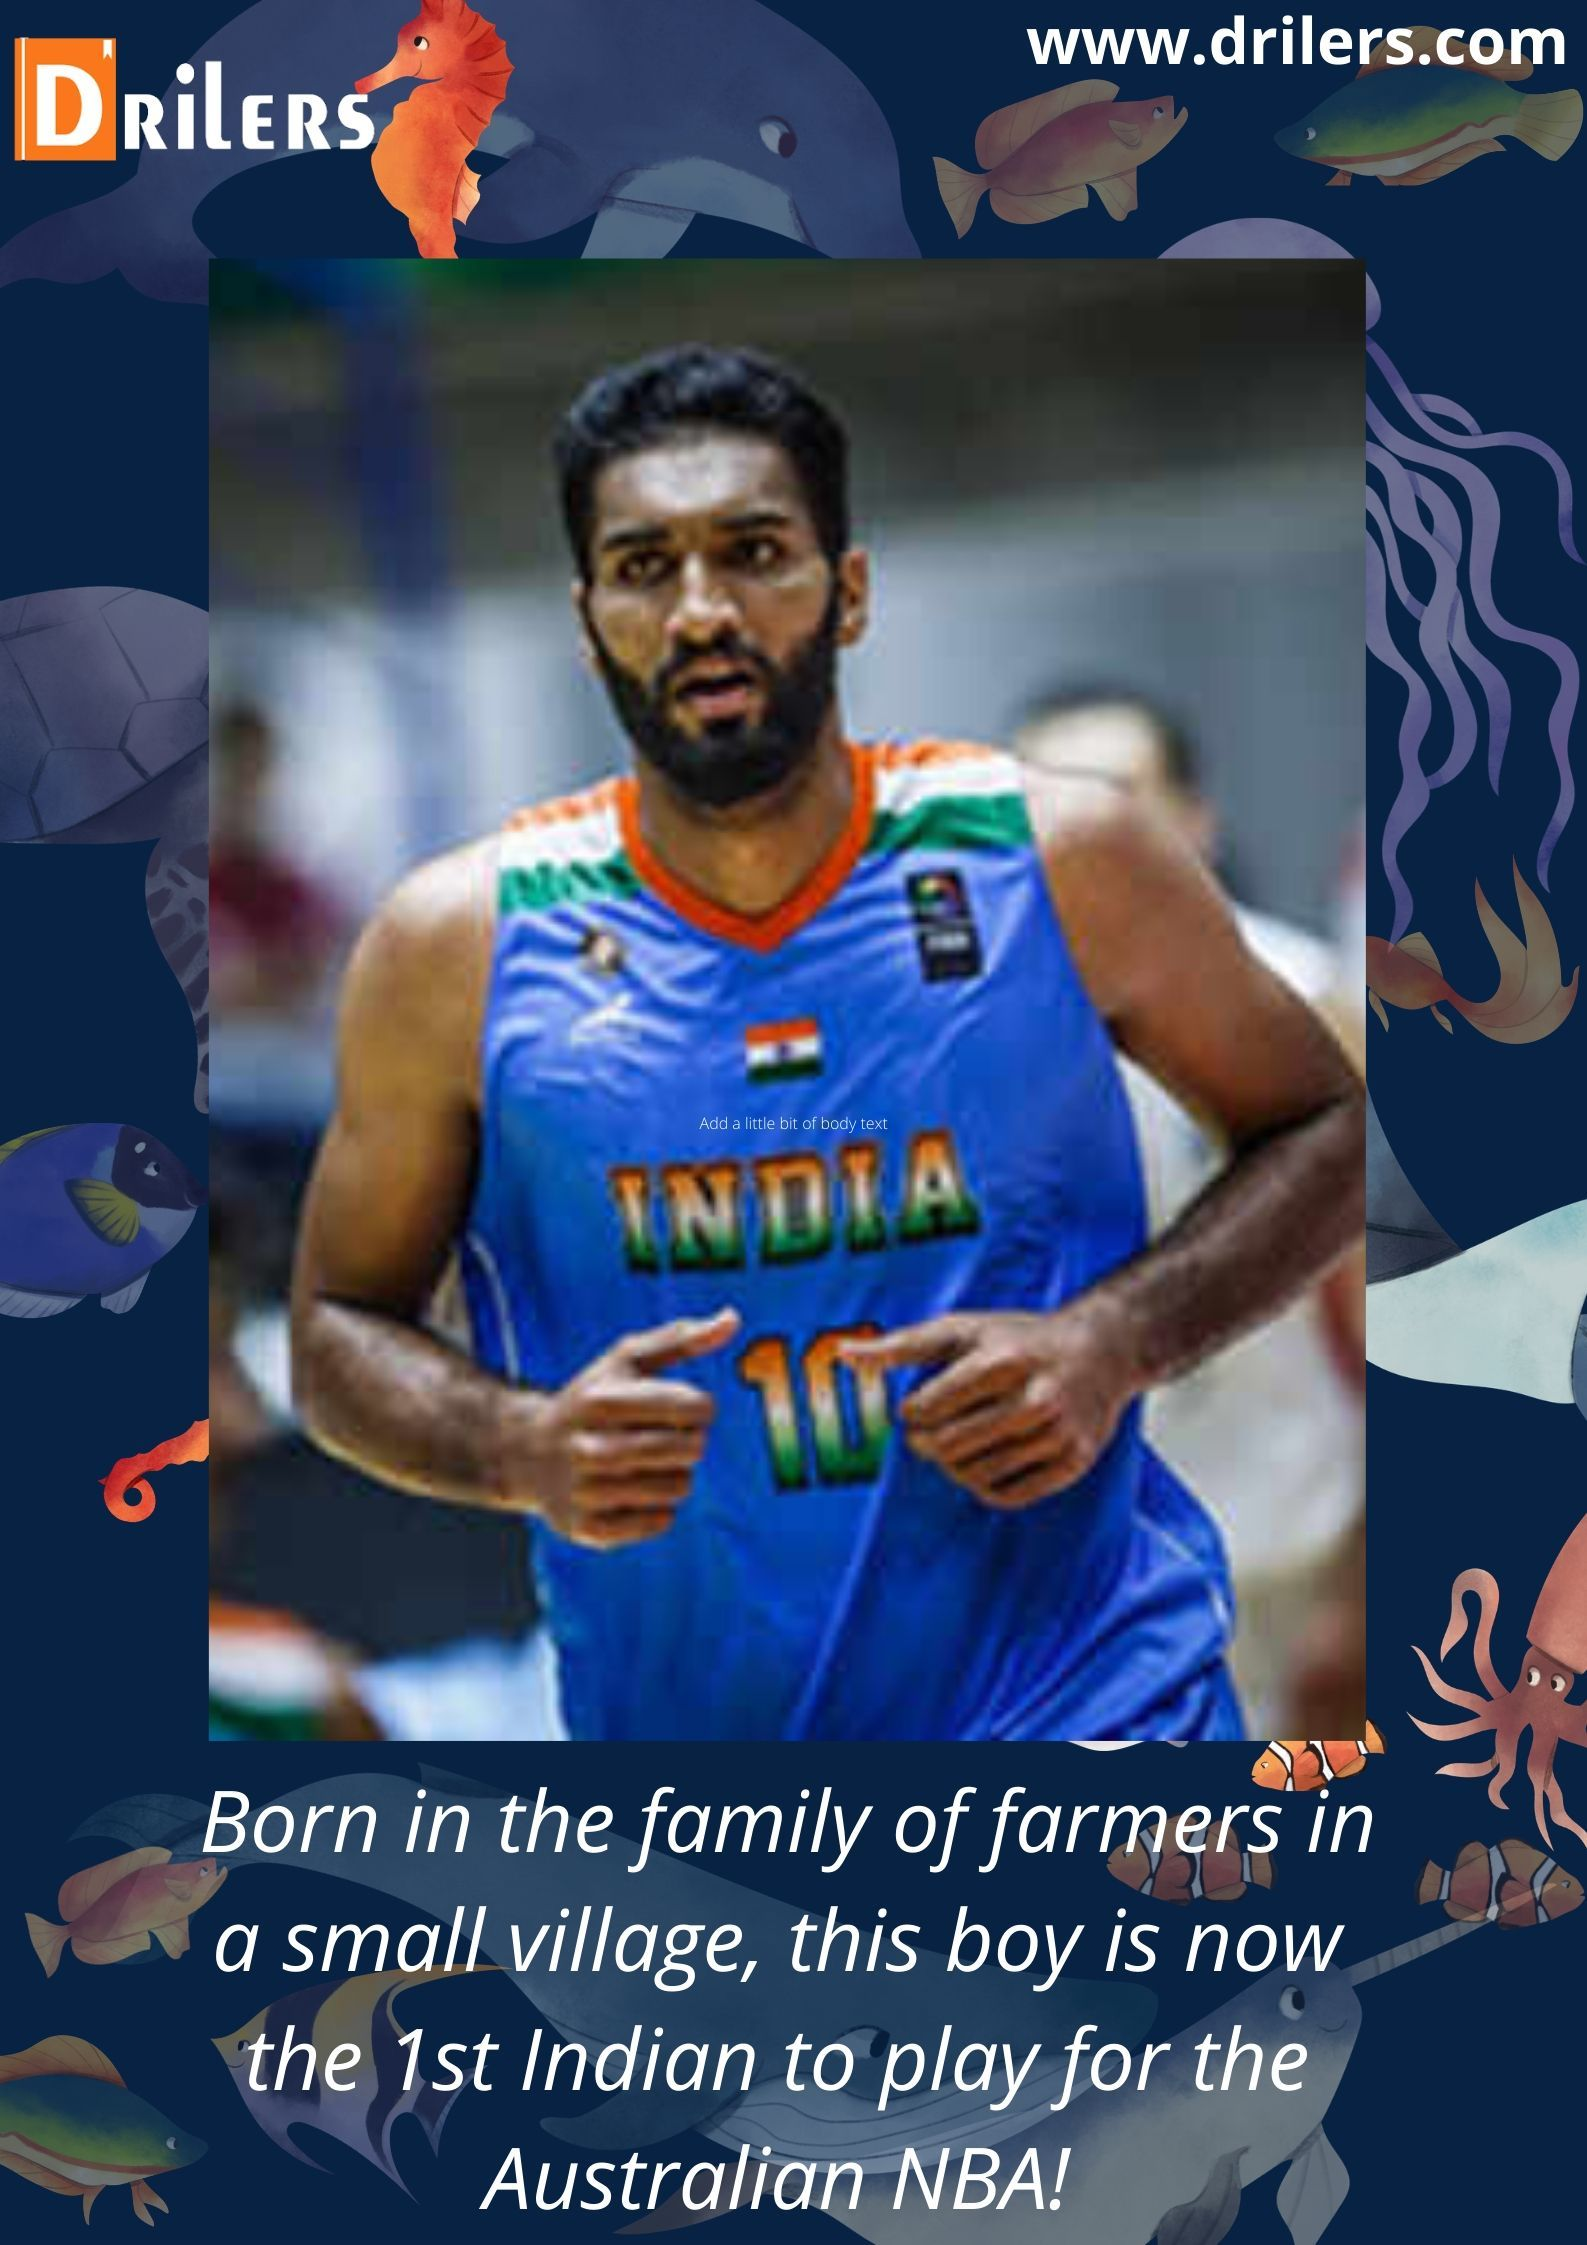 Motivational Stories Of Great Indian Personalities Like Amritpal Singh National Basketball League Basketball Academy Motivational Stories